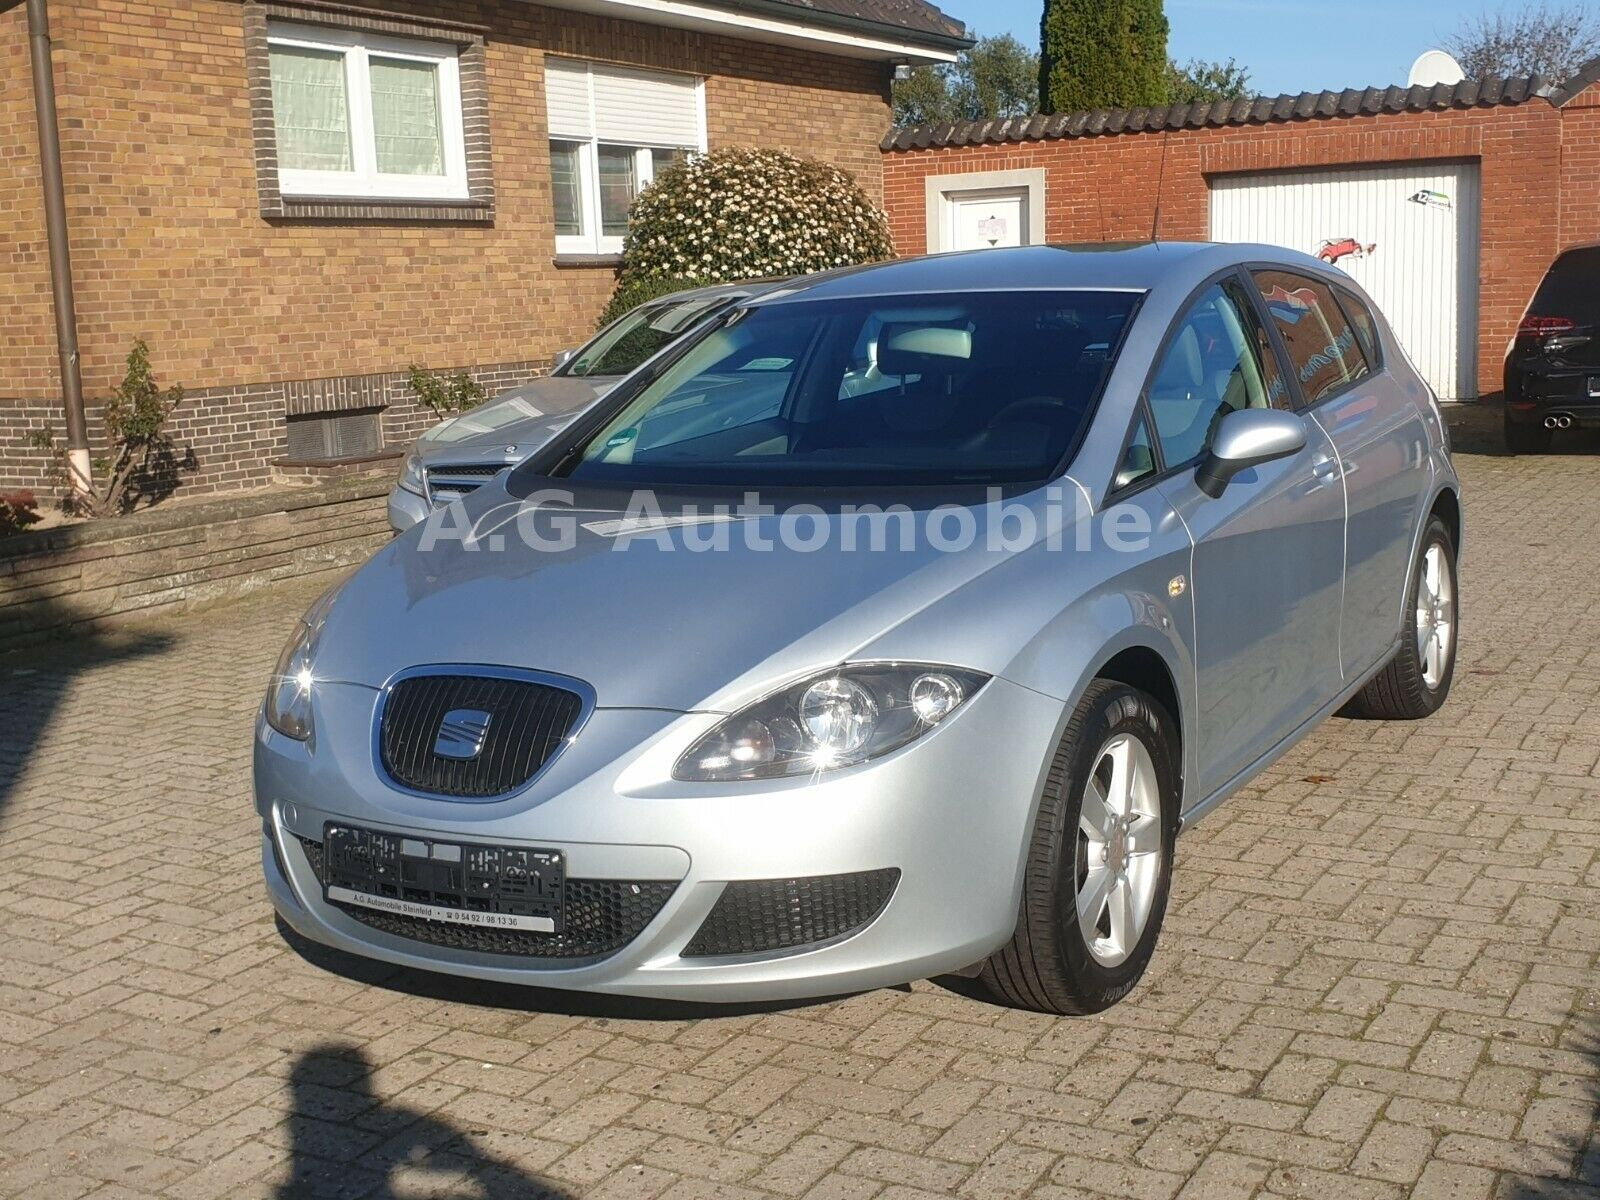 SEAT Leon Reference 1.6 MPI /